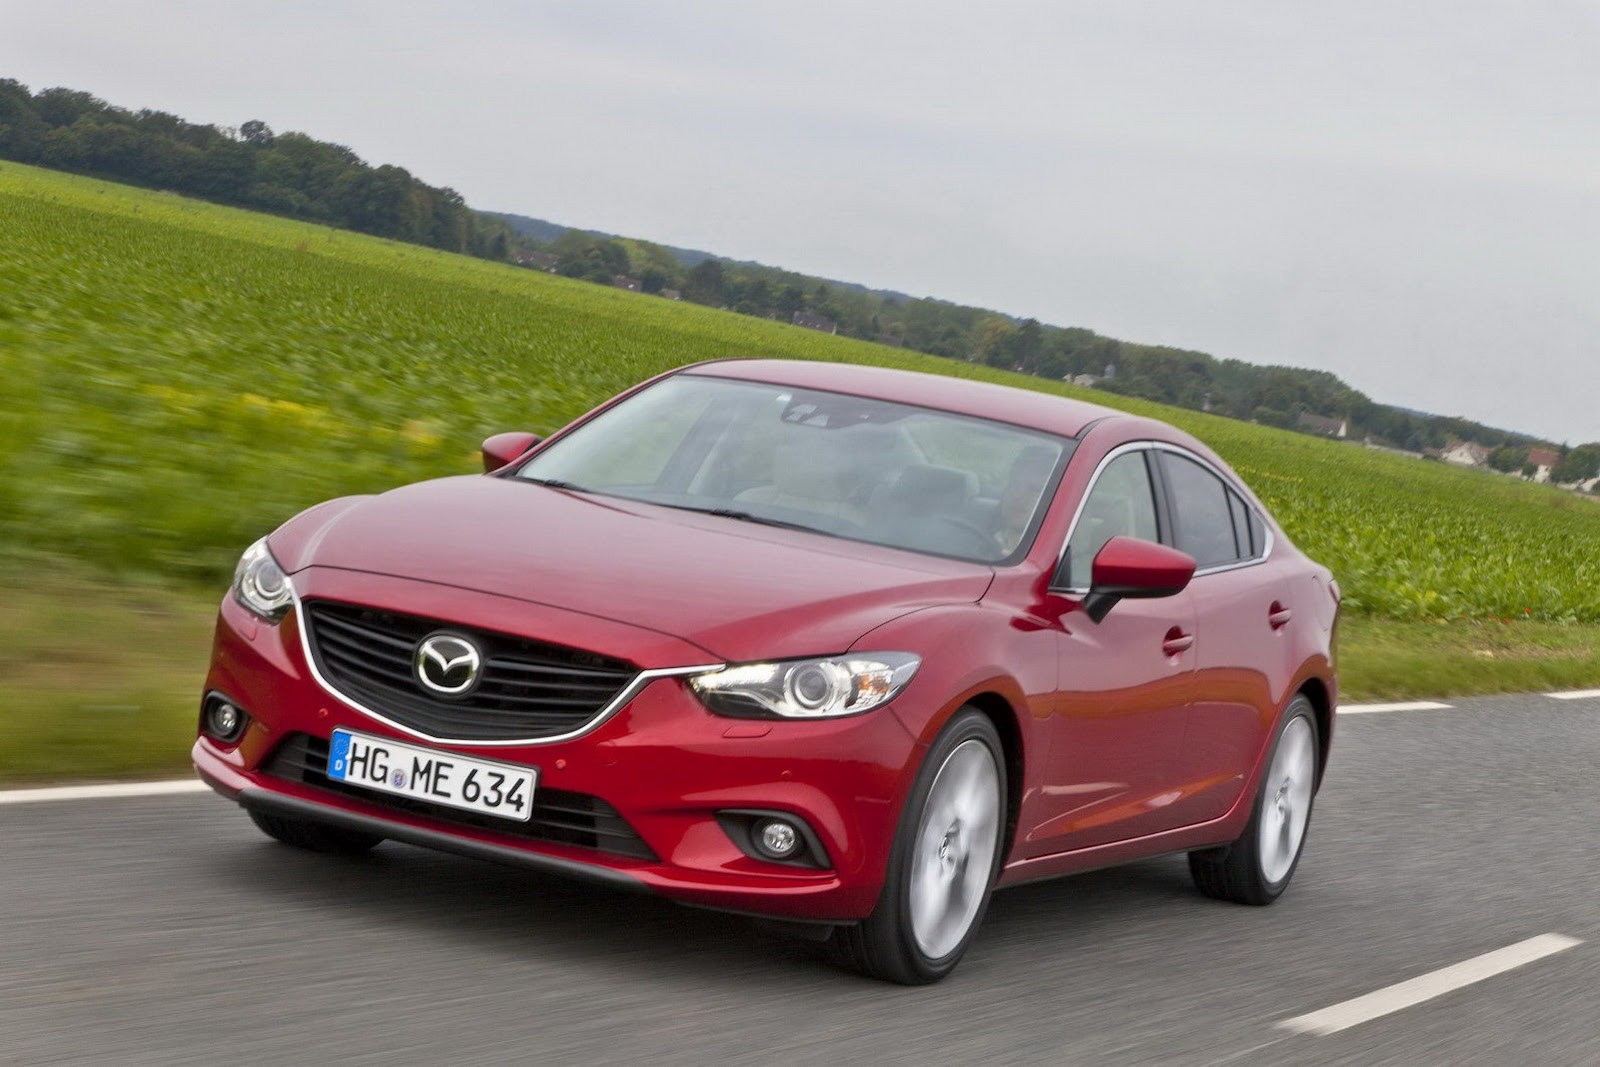 mazda releases new photos of 2013 mazda6 sedan and wagon. Black Bedroom Furniture Sets. Home Design Ideas